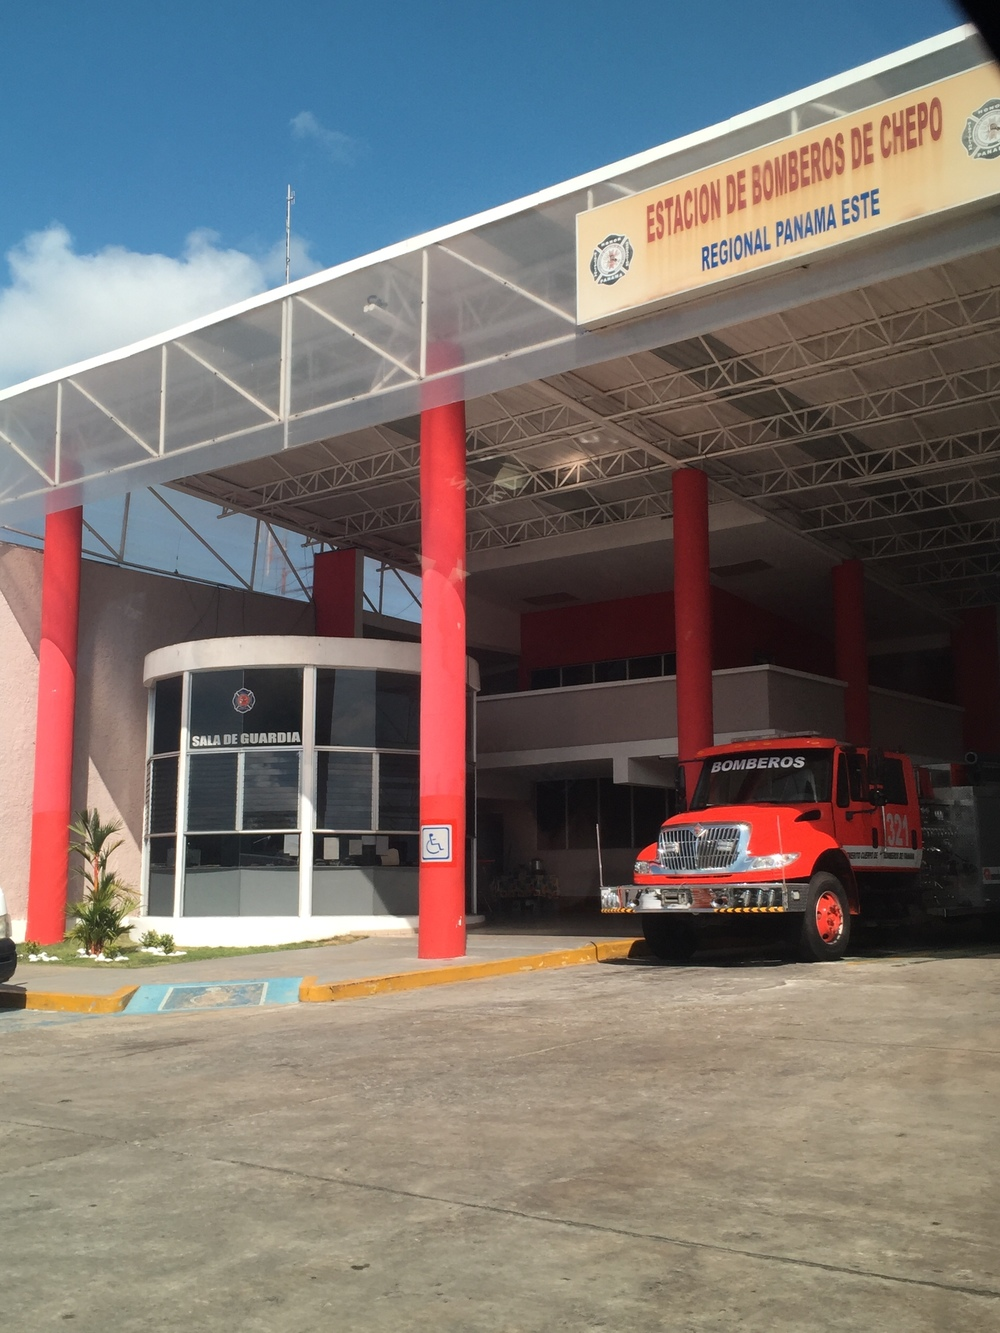 What seemed to feel like our headquarters- the Chepo firestation!